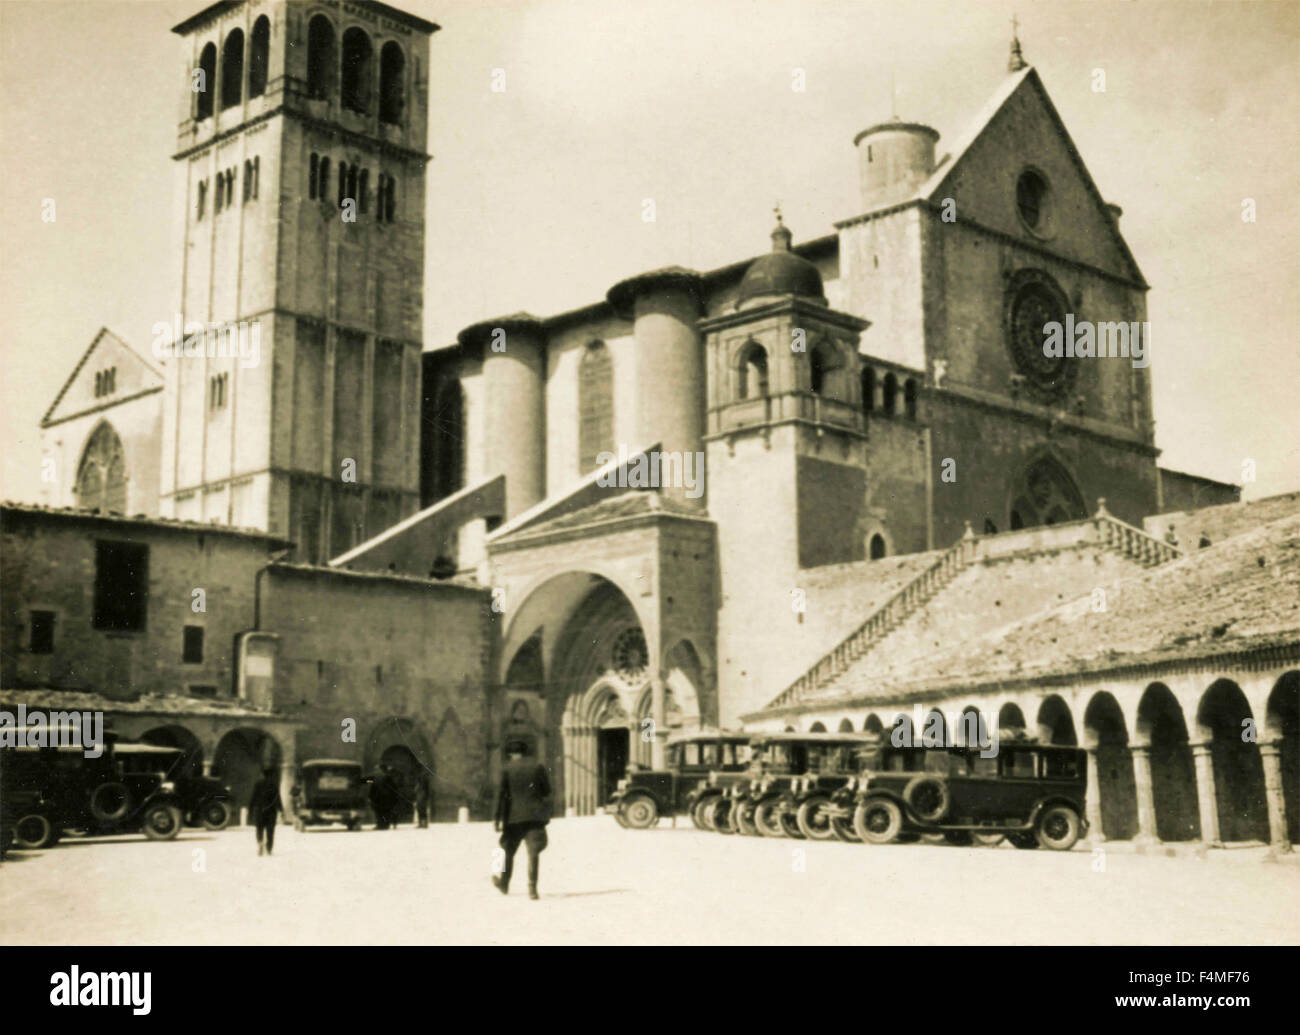 Abbey military occupied, Italy - Stock Image